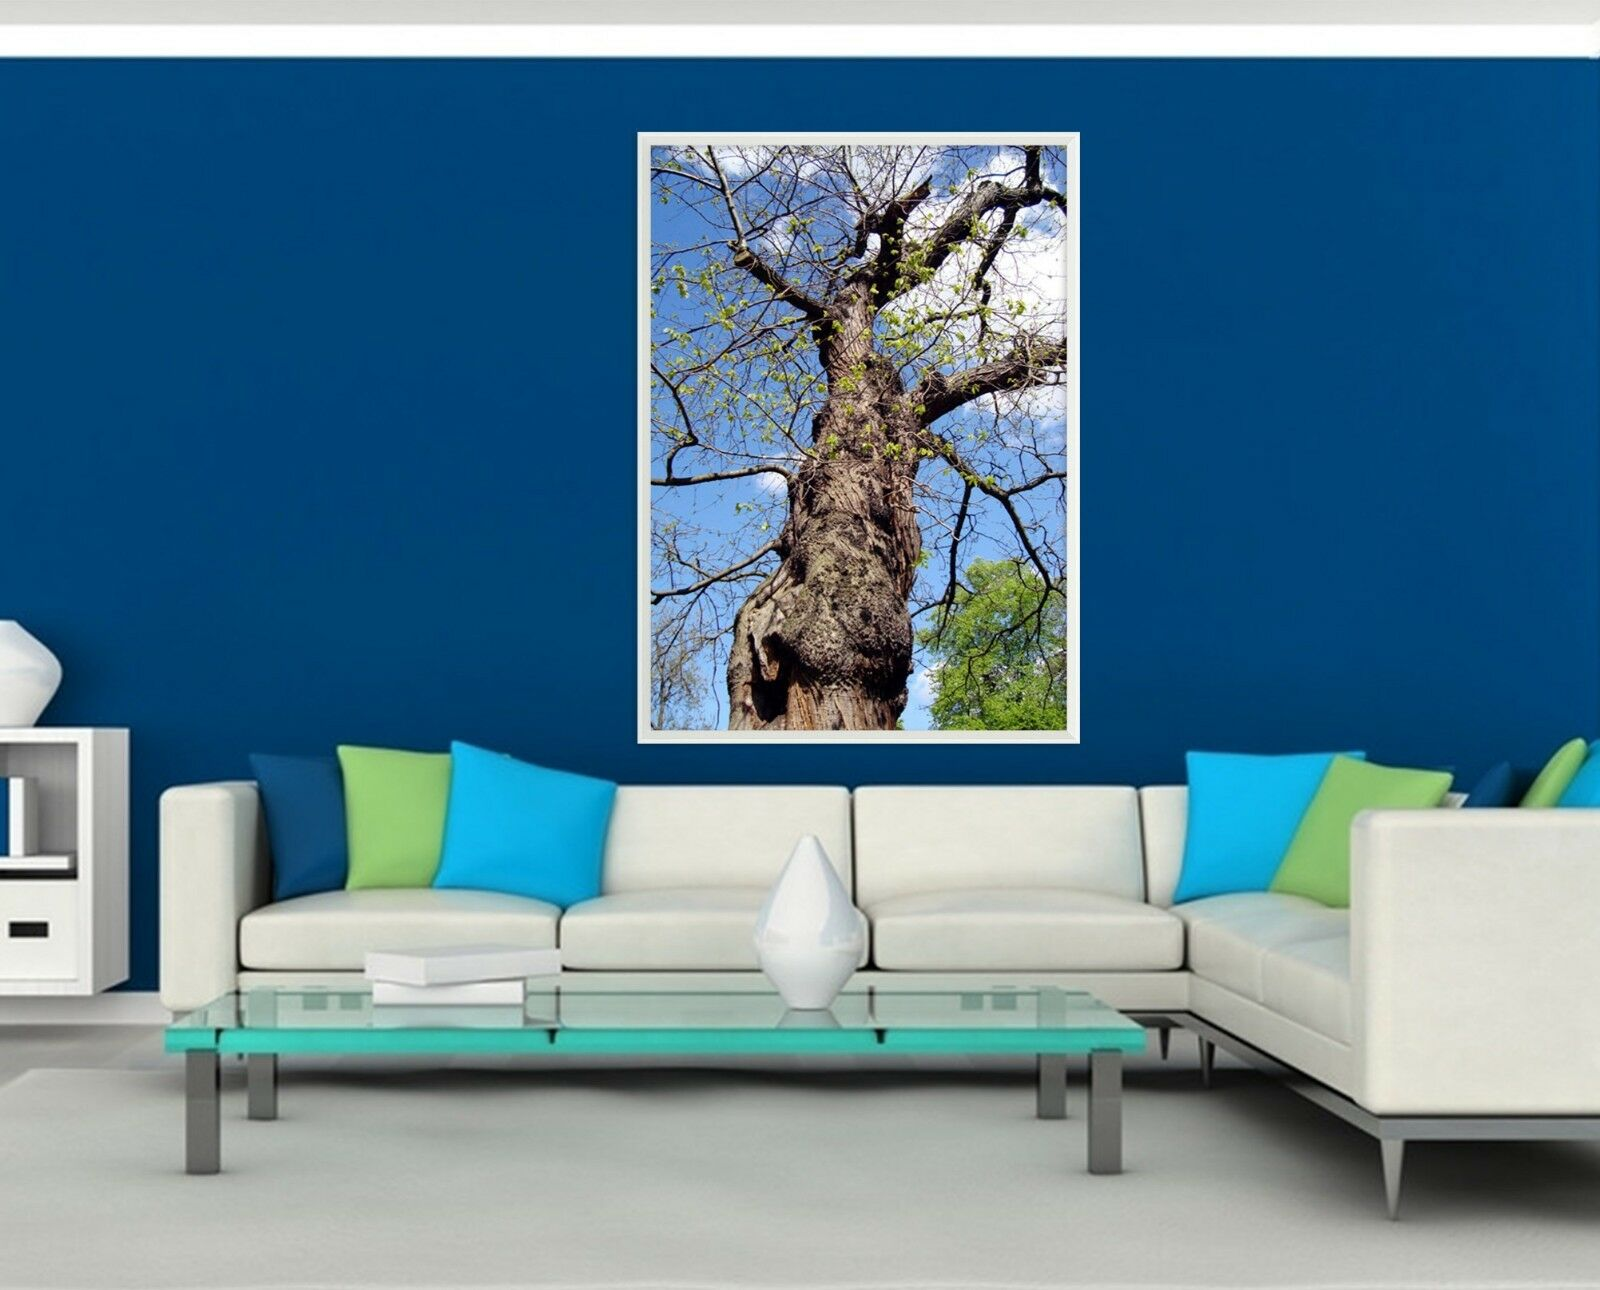 3D bluee Sky Tree 55 Fake Framed Poster Home Decor Print Painting Unique Art